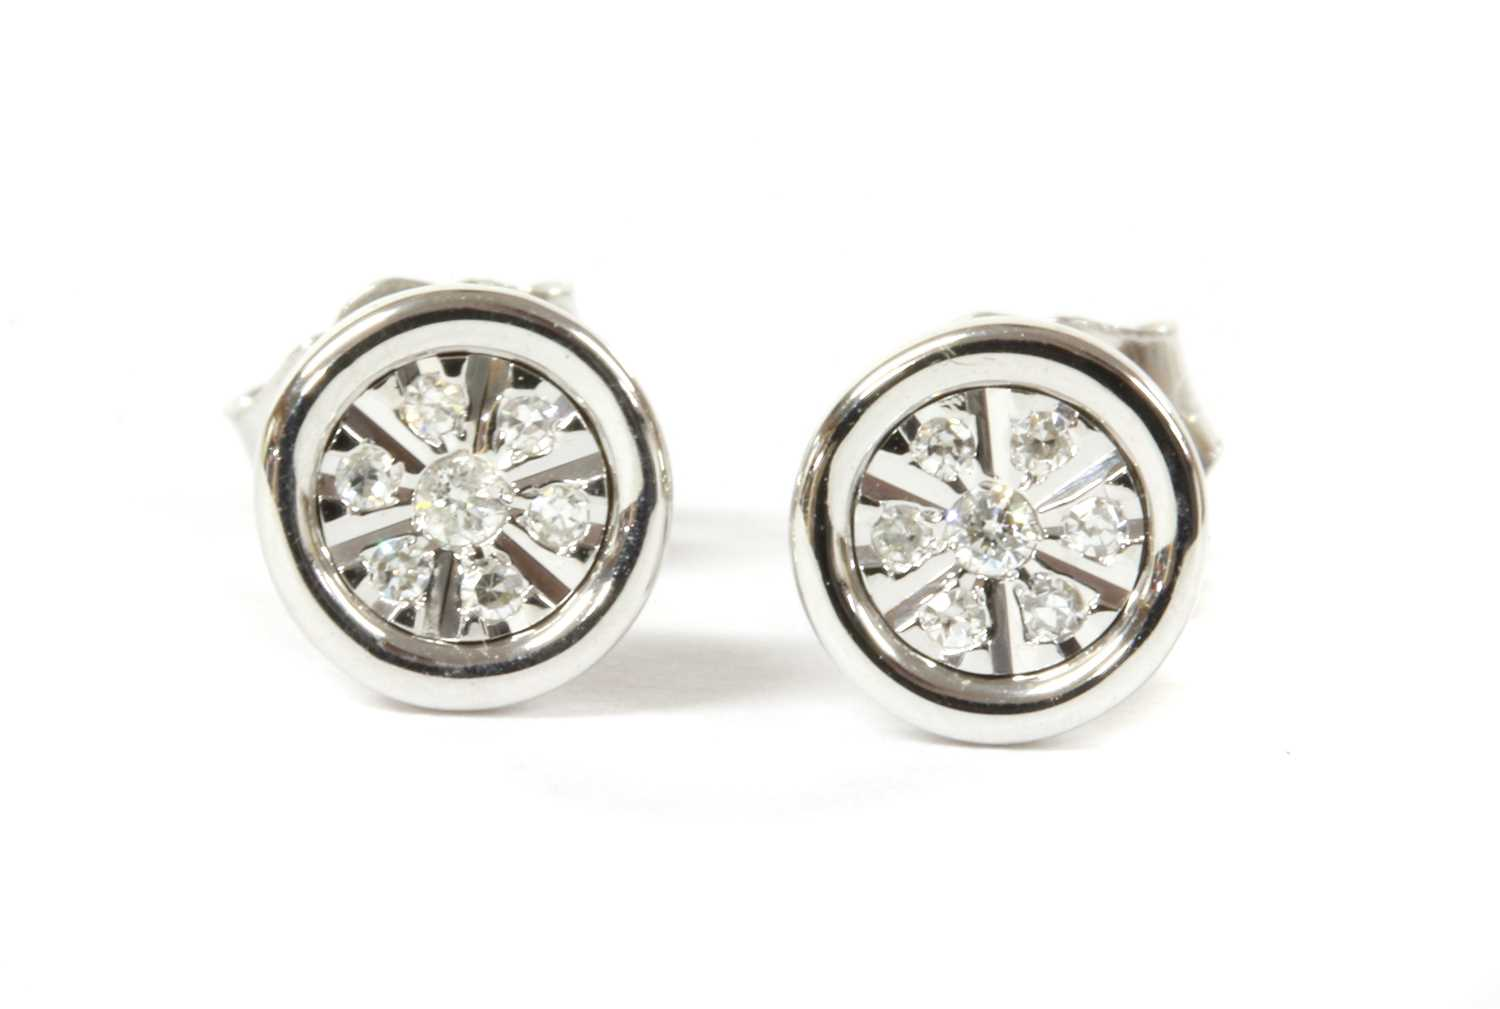 Lot 68 - A pair of white gold diamond earrings